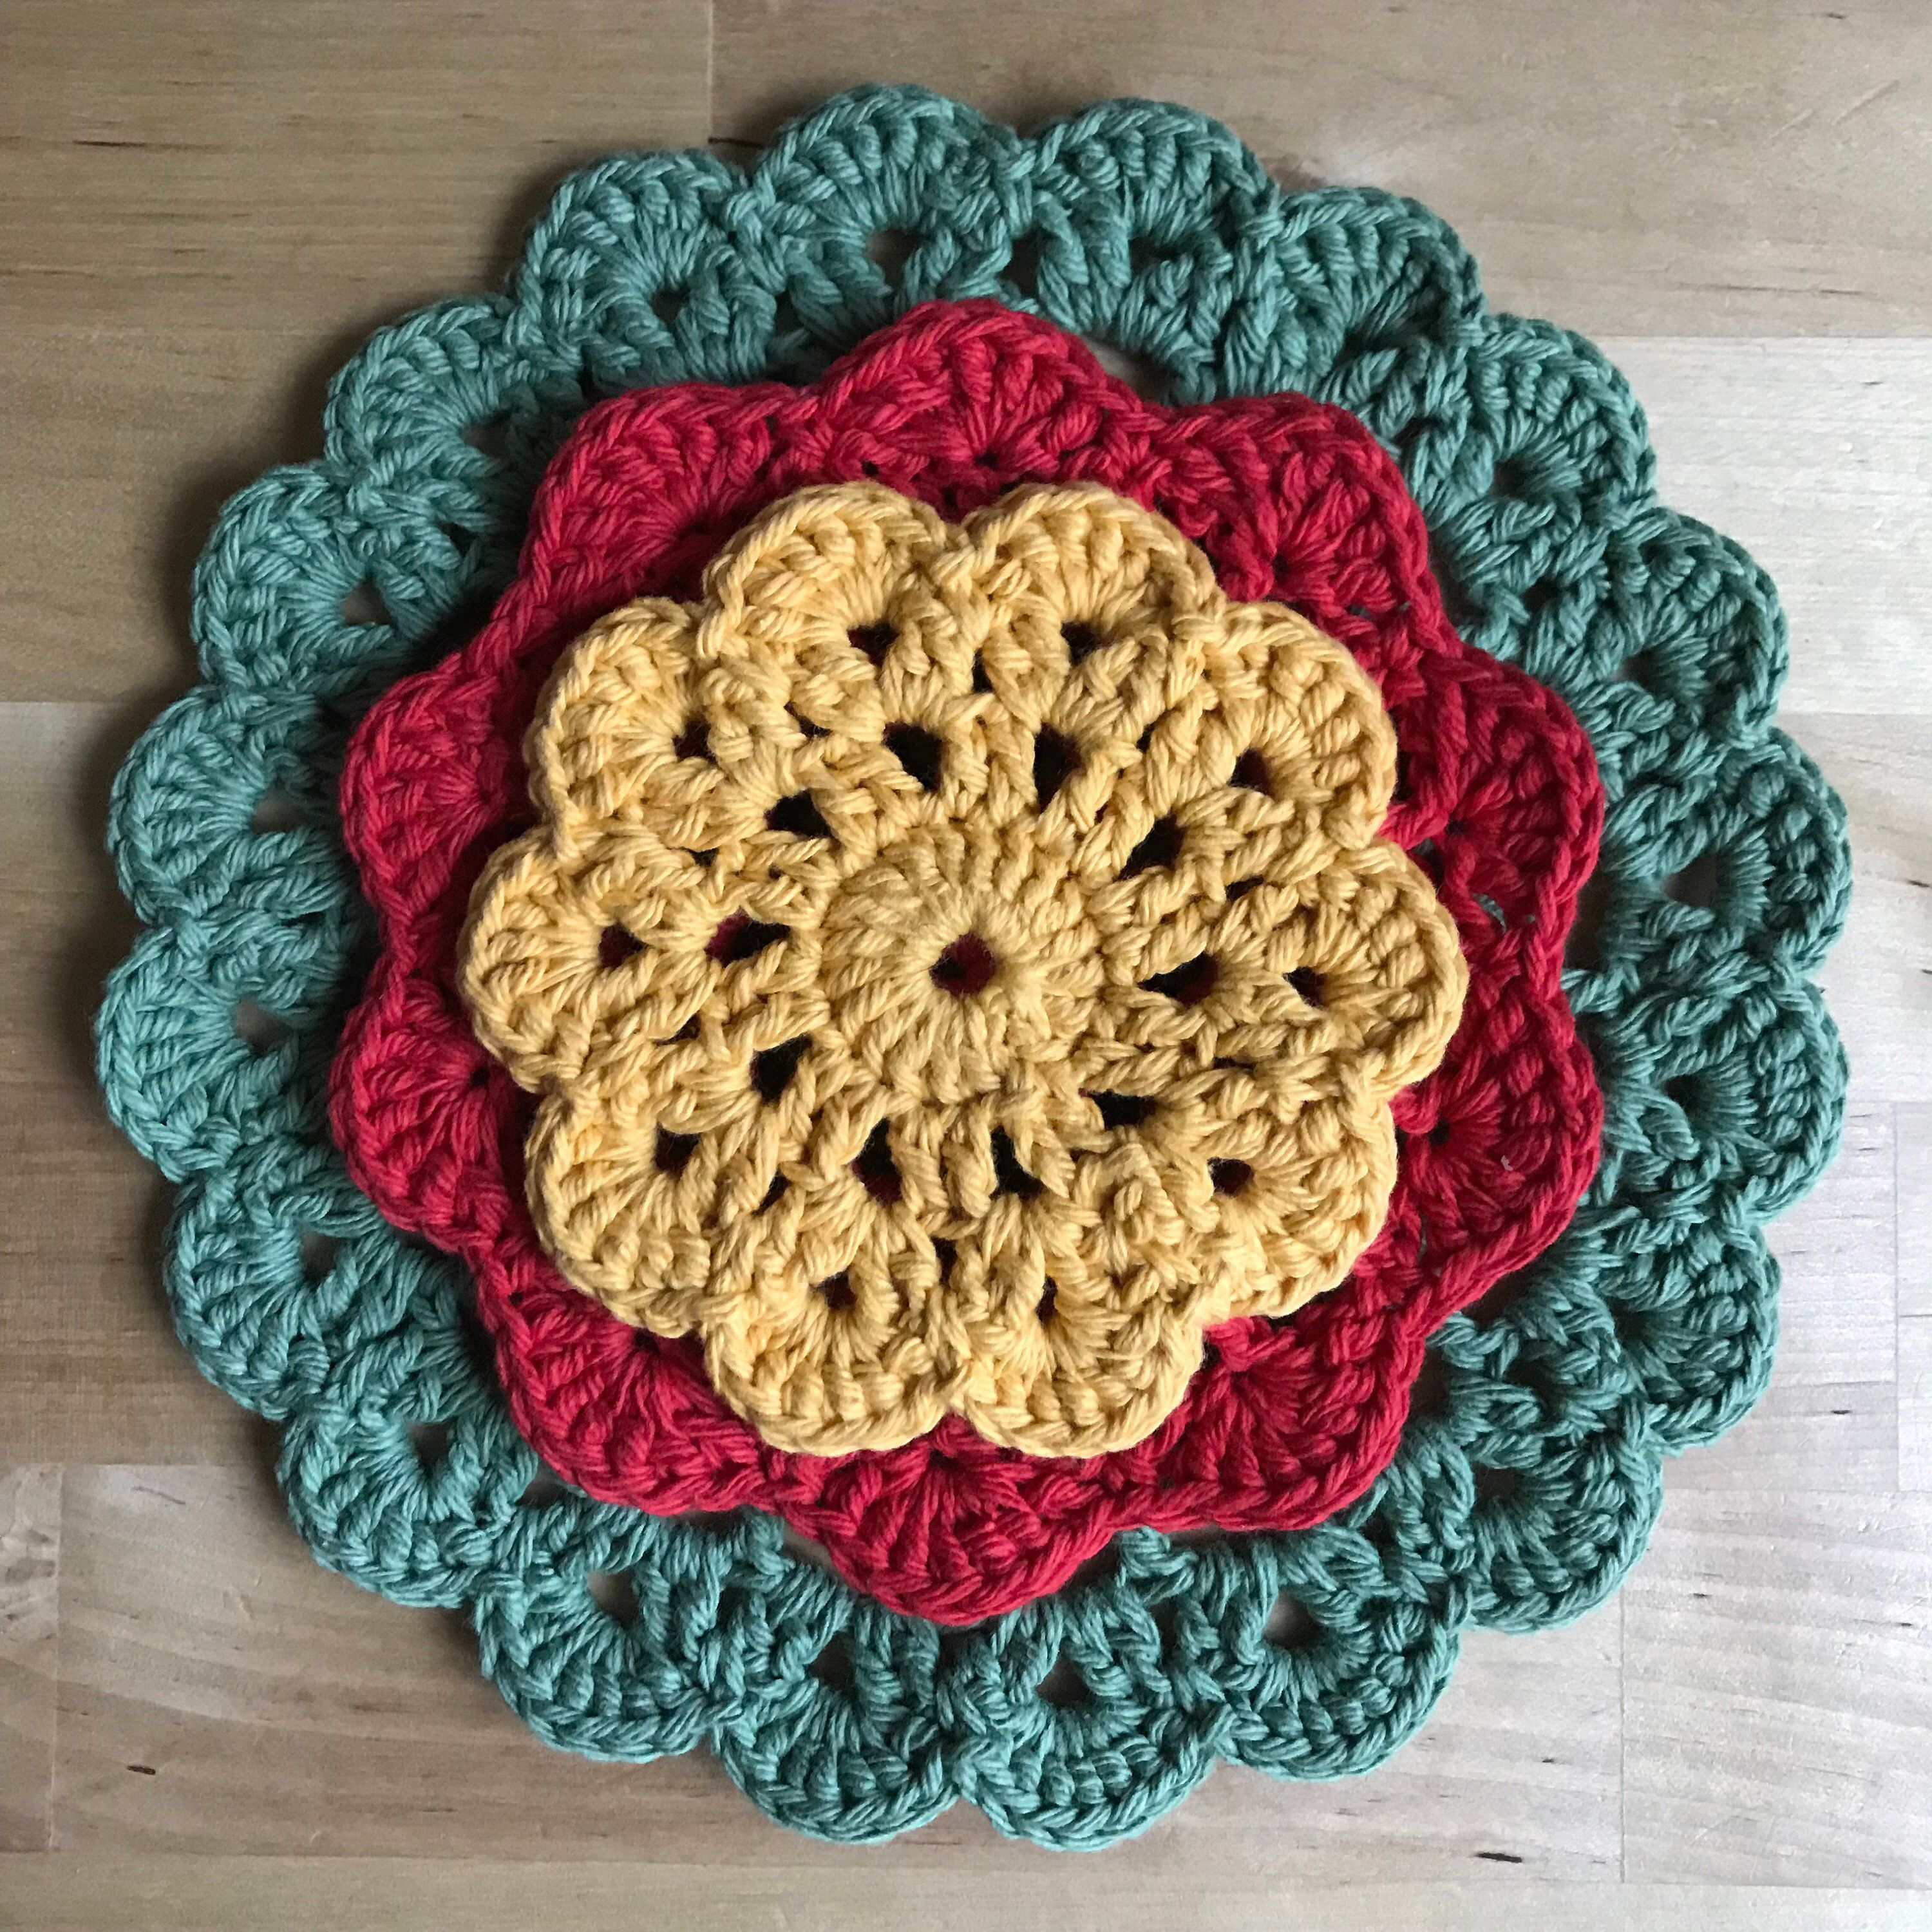 Kitchen Hot Pads How To Refinish Stained Wood Cabinets Crochet Sets Coasters Set Handmade Excited Share This Item From My Etsy Shop Of 2 Doily Mat